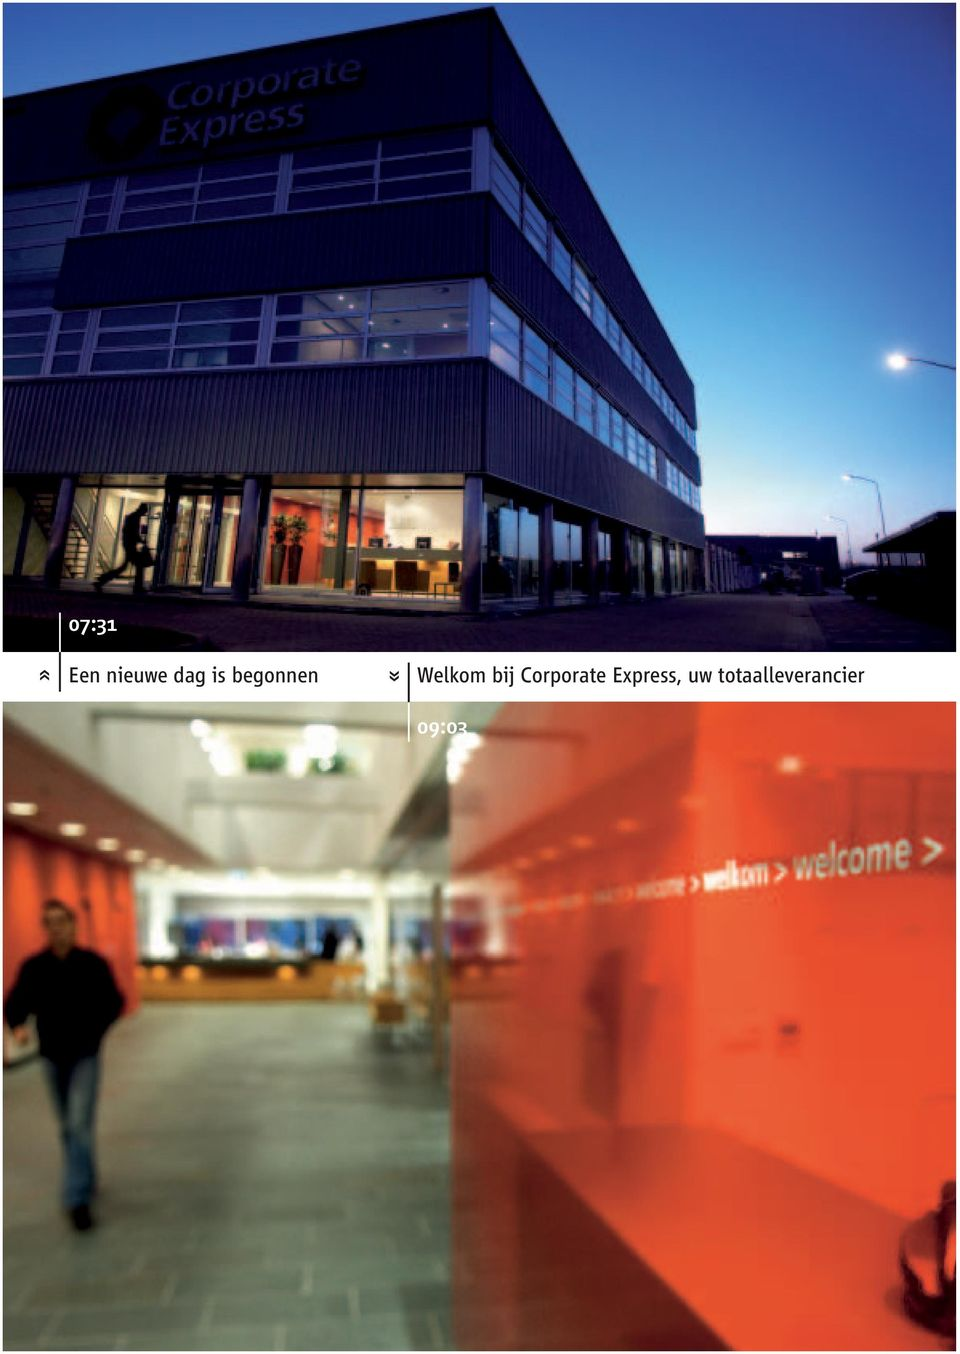 Express, uw totaalleverancier